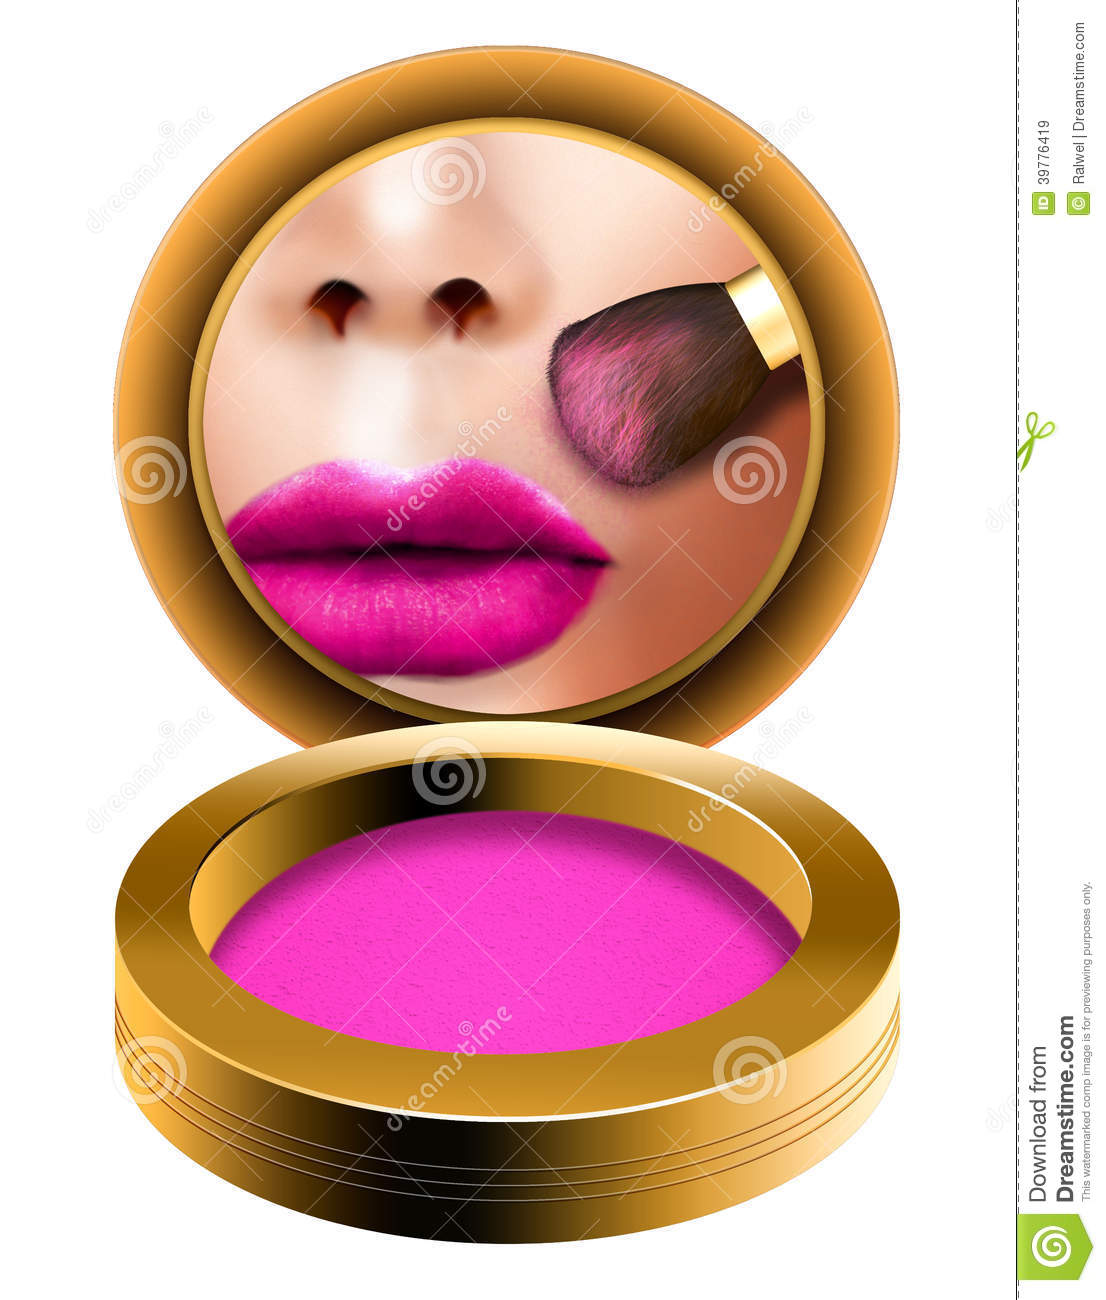 Makeup Blush Brush, Woman Getting Ready Looking In Pocket Mirror.